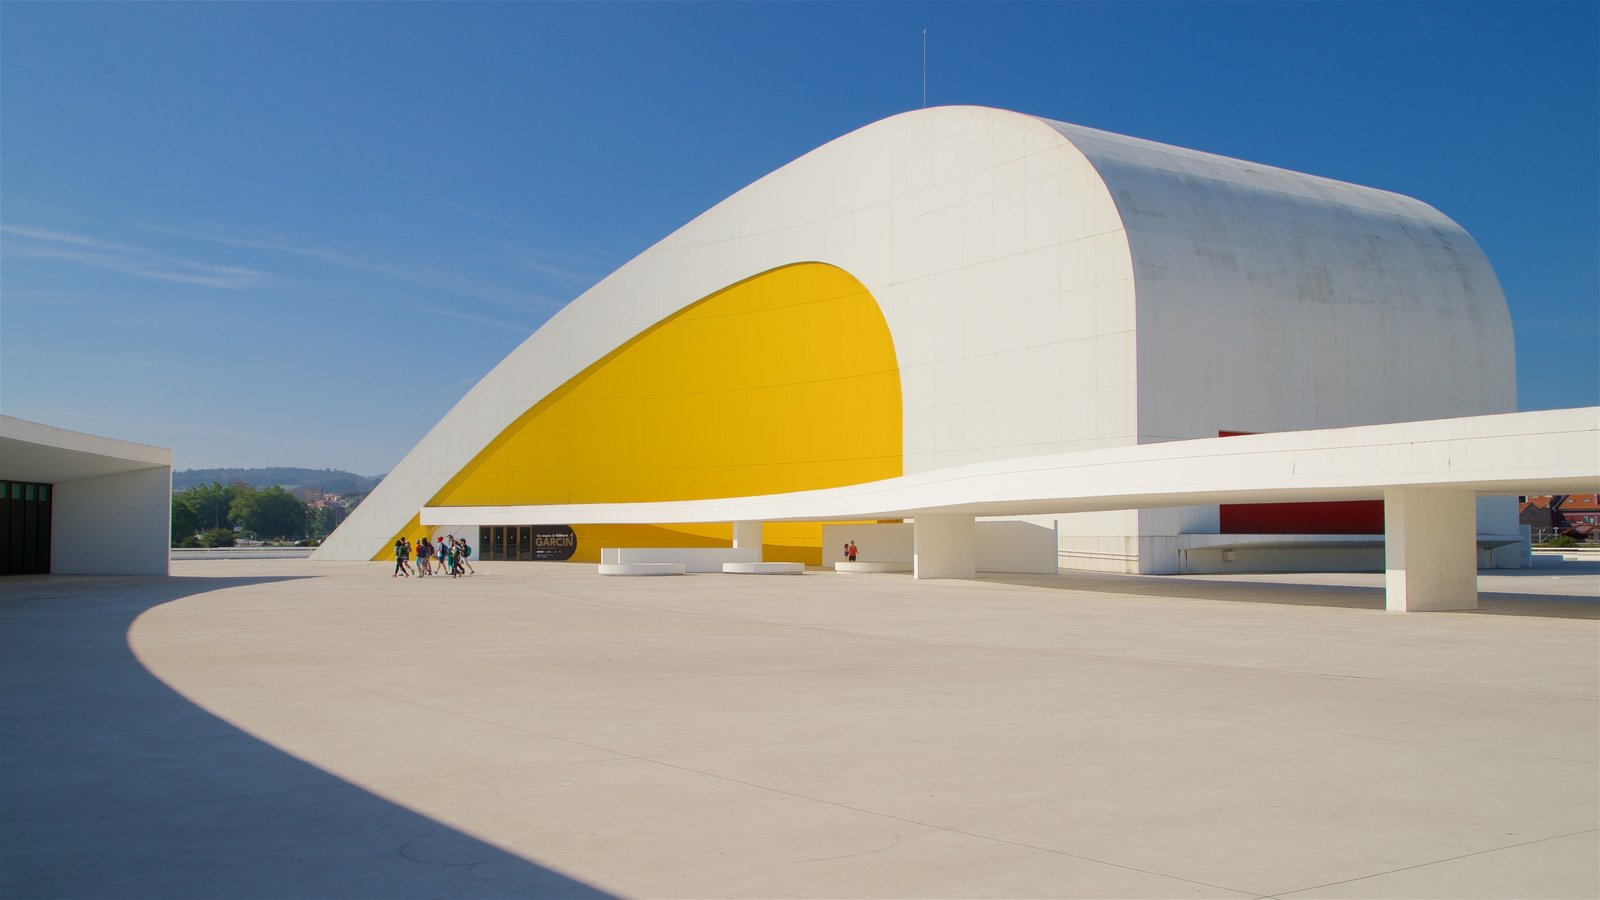 Oscar Niemeyer Cultural Centre featuring modern architecture as well as a small group of people